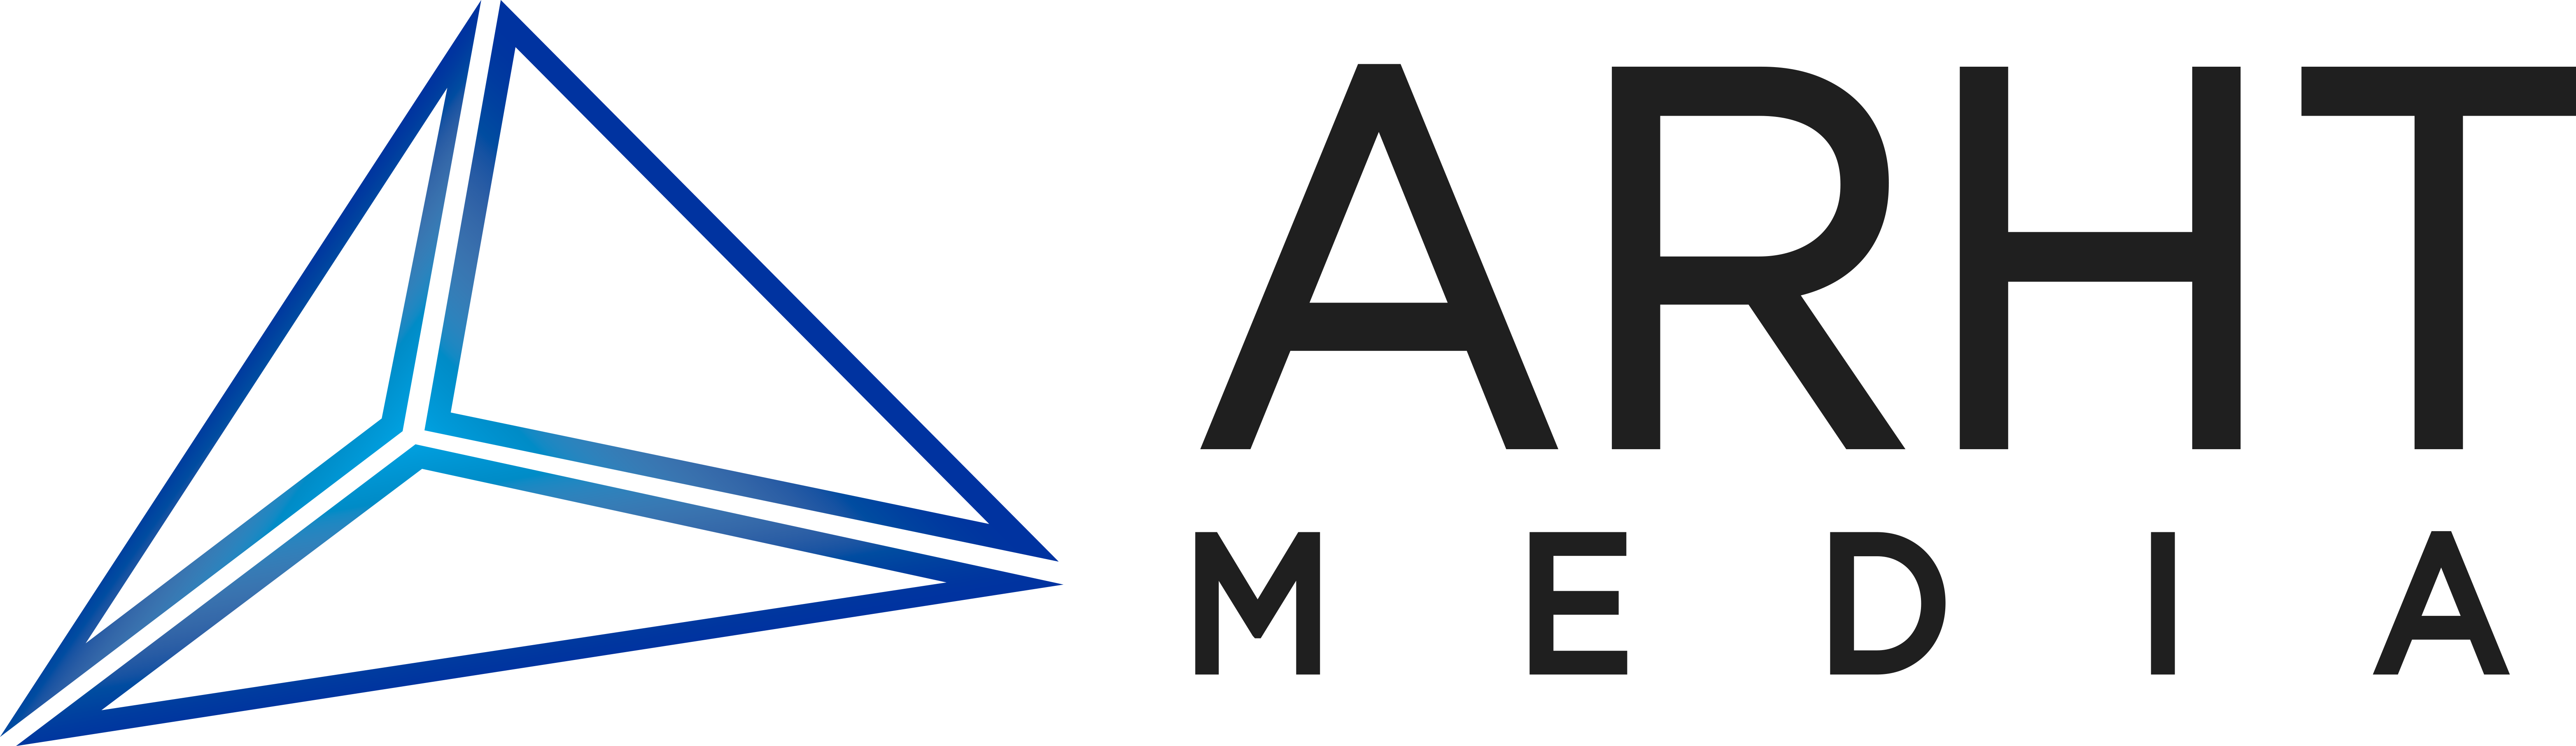 ARHT Media Announces up to $1,500,000 Private Placement Financing